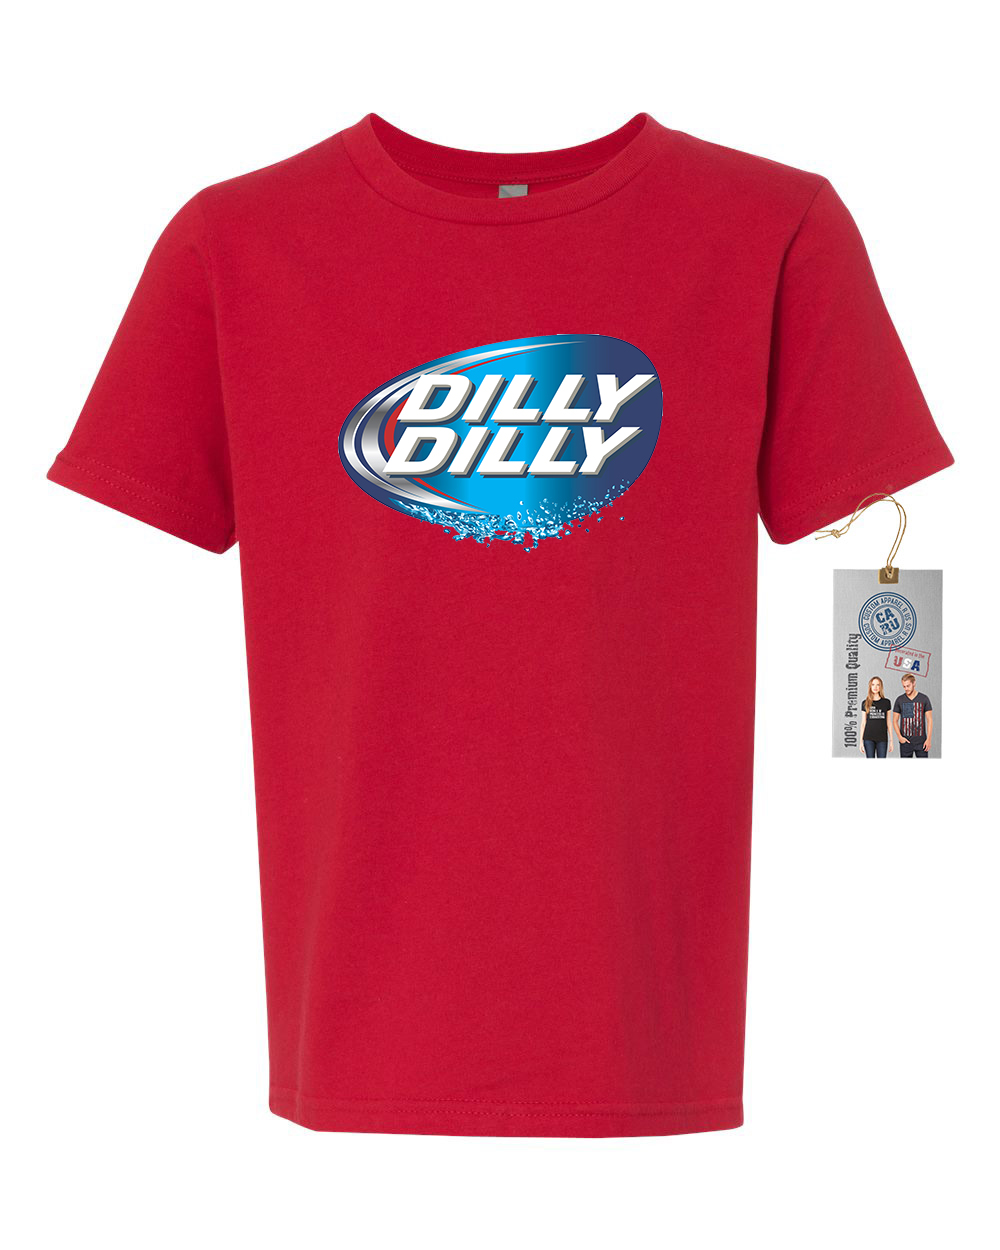 Dilly Dilly Beer Shirt Youth Short Sleeve T-Shirt